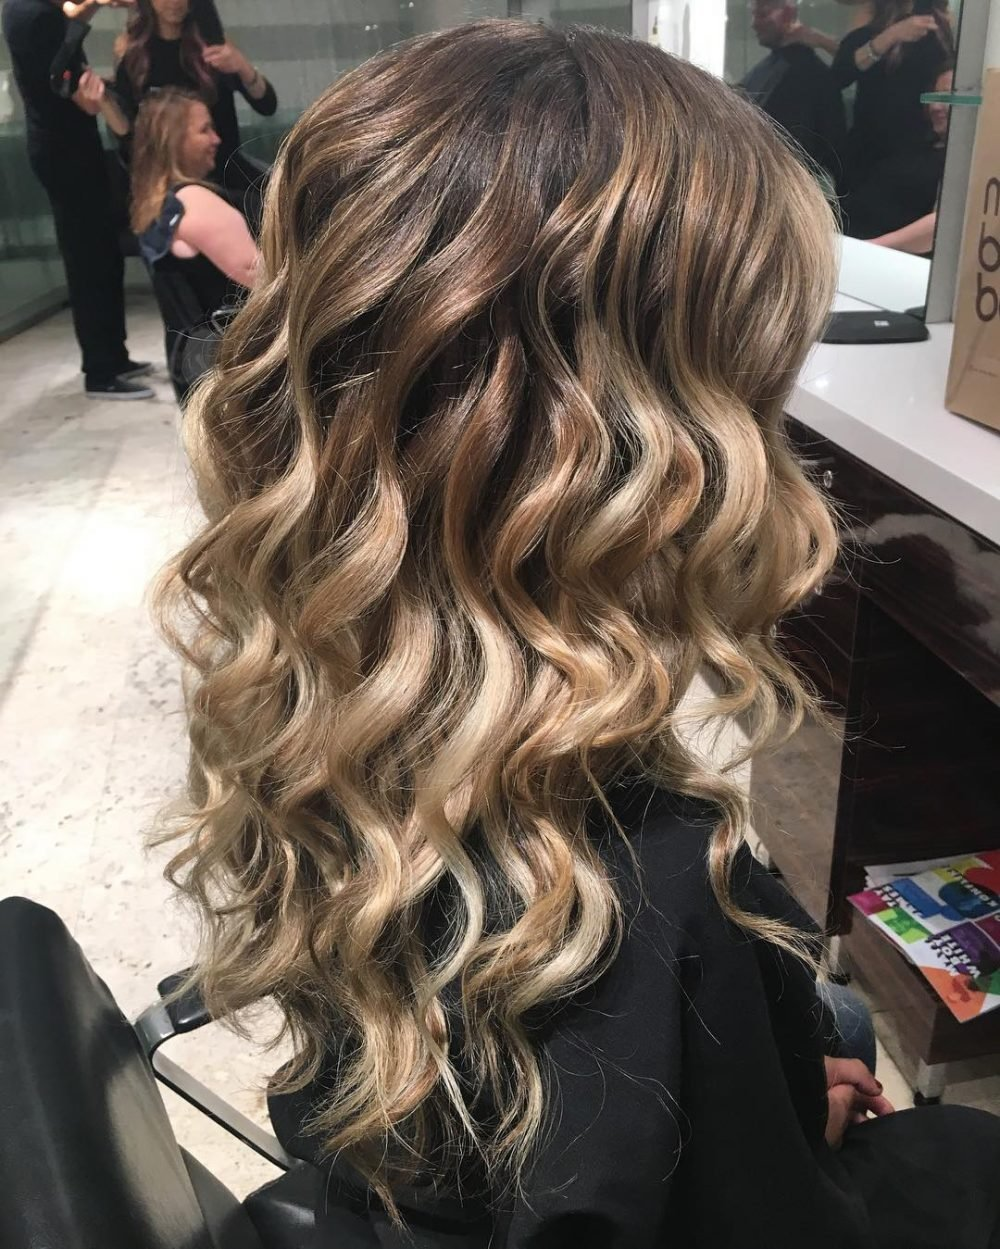 New 18 Stunning Curly Prom Hairstyles For 2019 Updos Down Ideas With Pictures